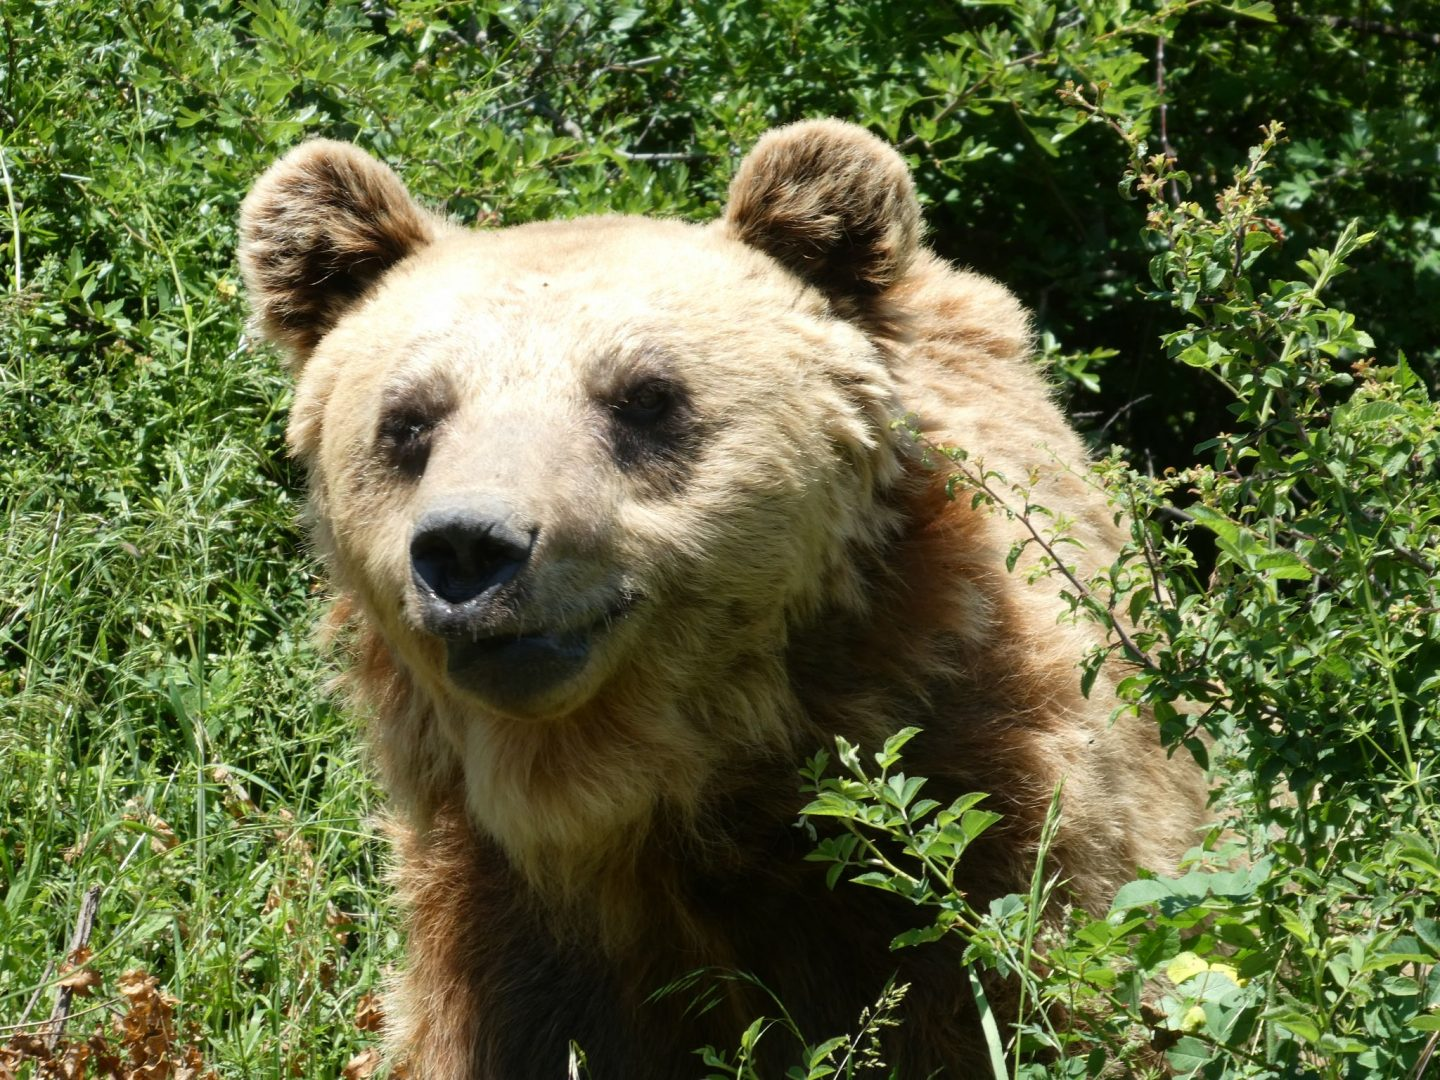 Kosovo Bear Sanctuary